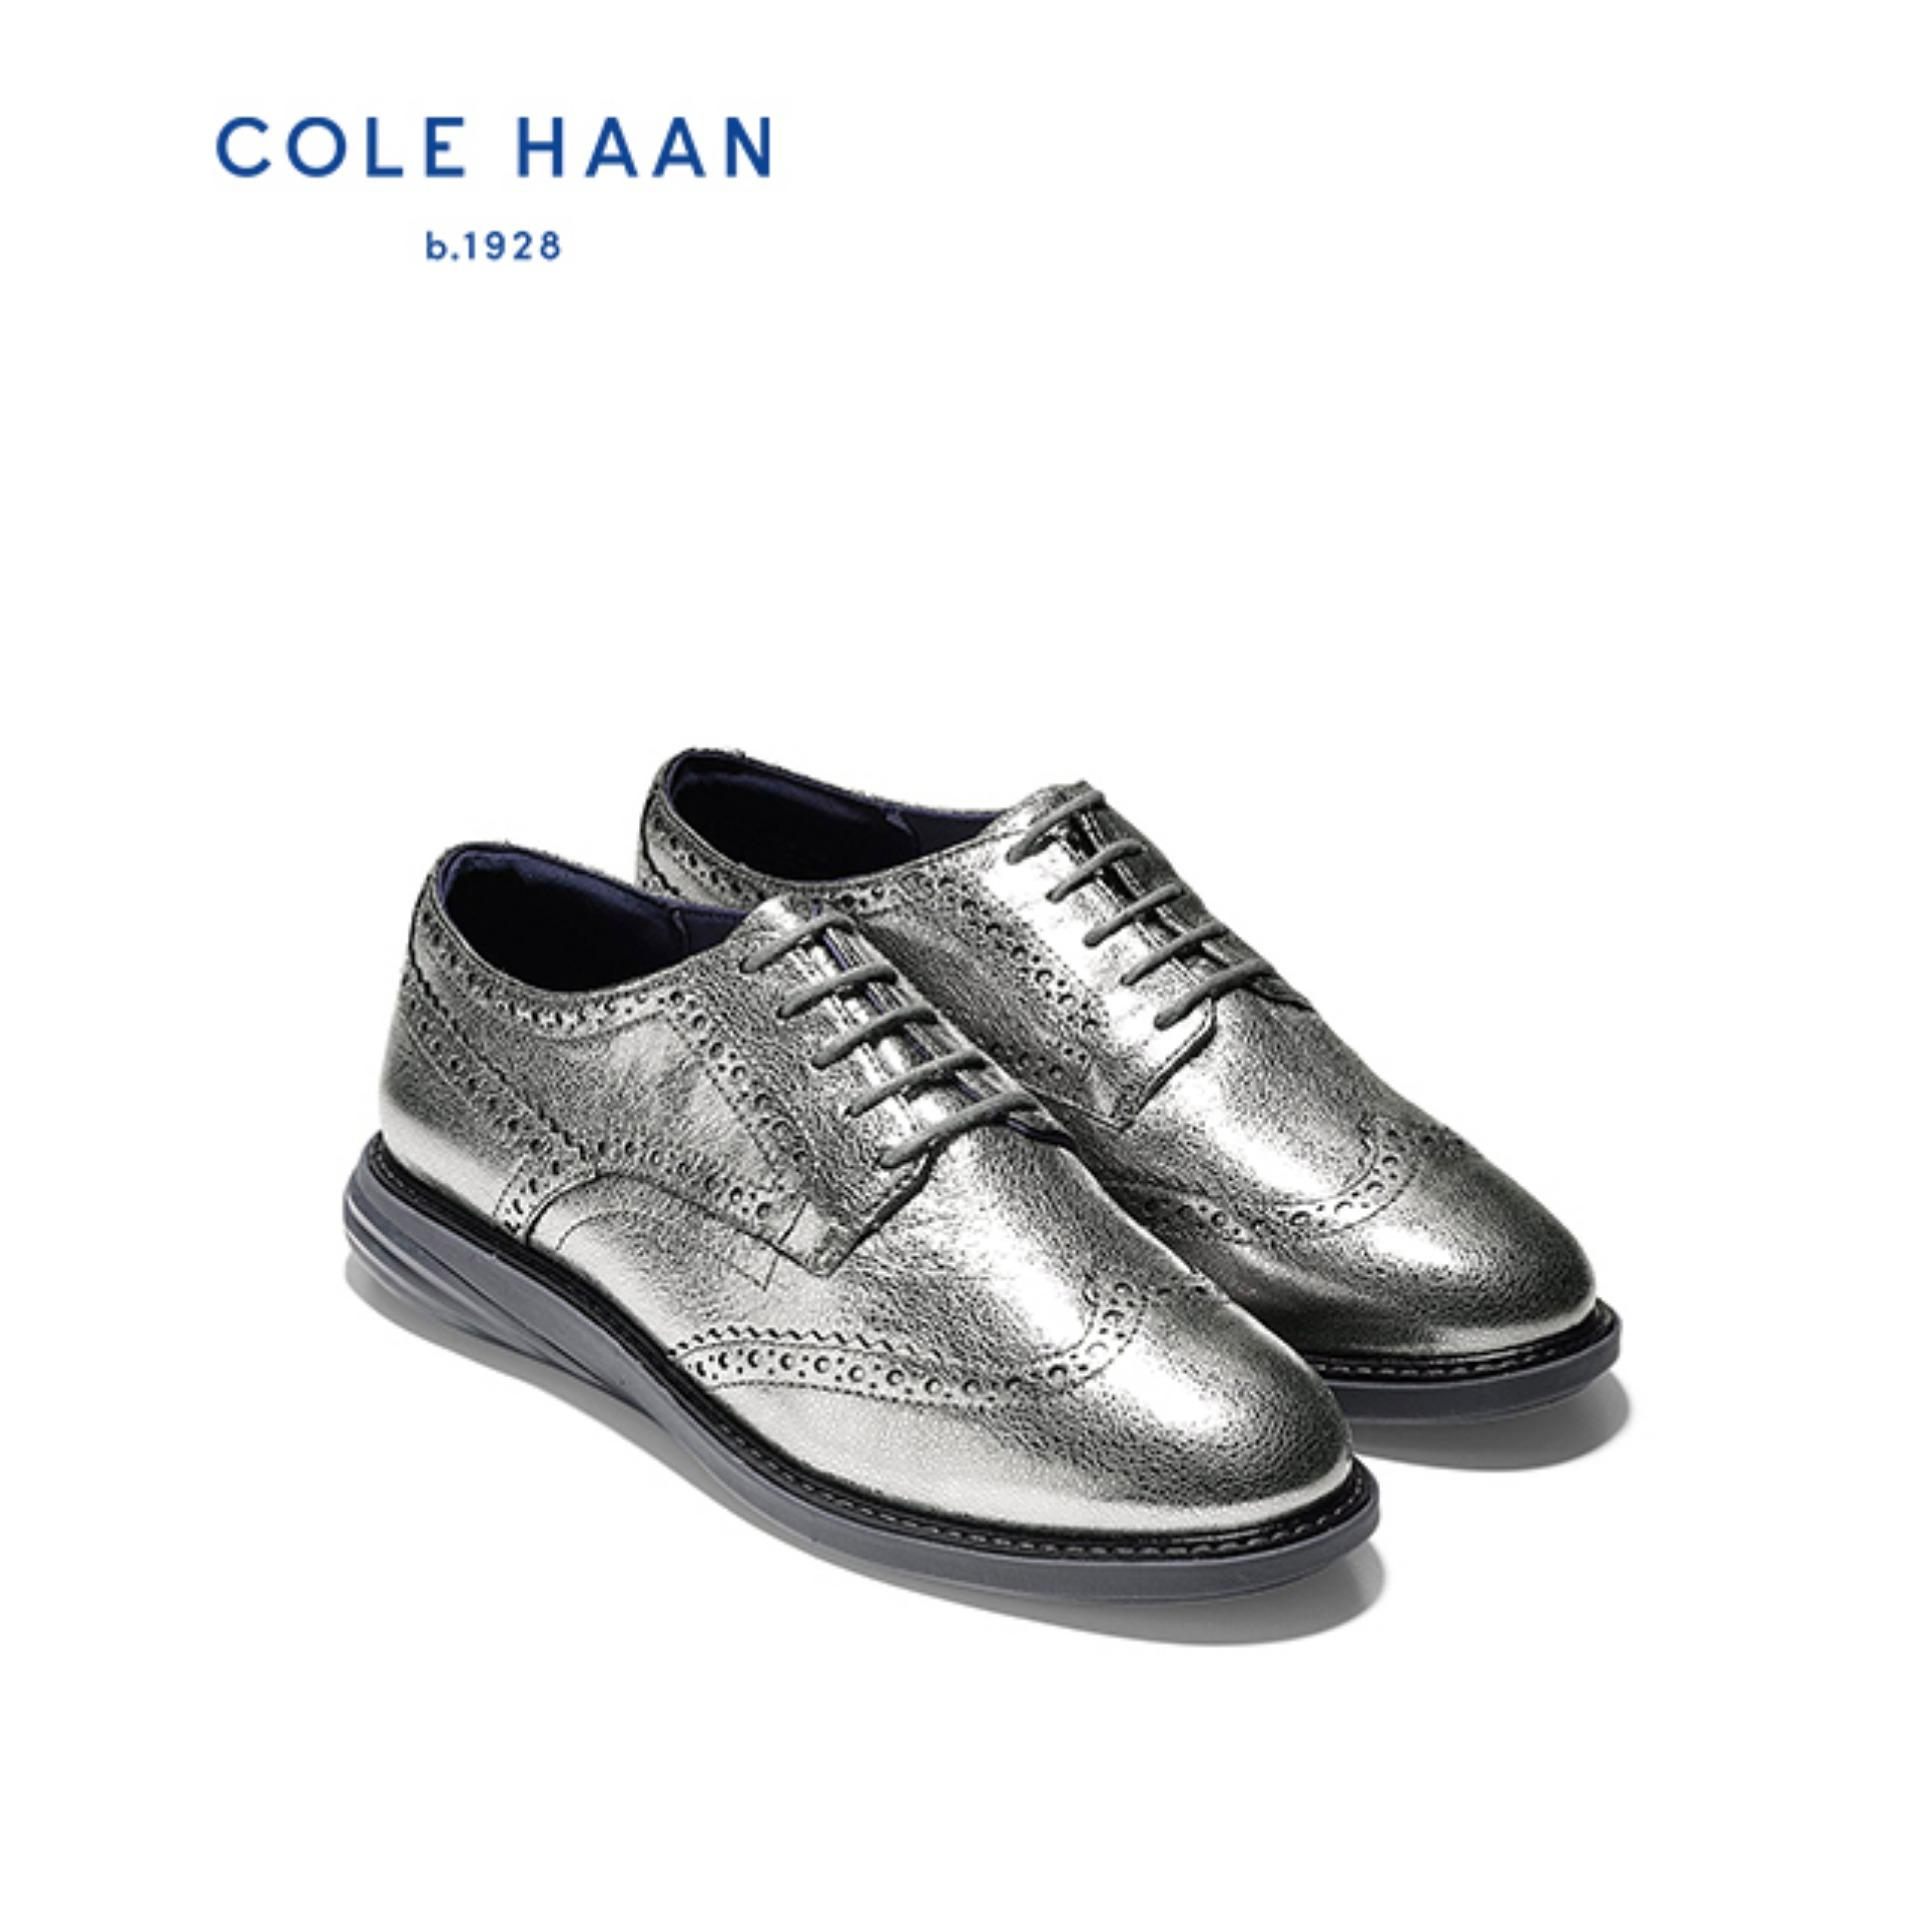 a2606752402 Cole Haan Oxfords for Women Philippines - Cole Haan Lace Up Shoes ...